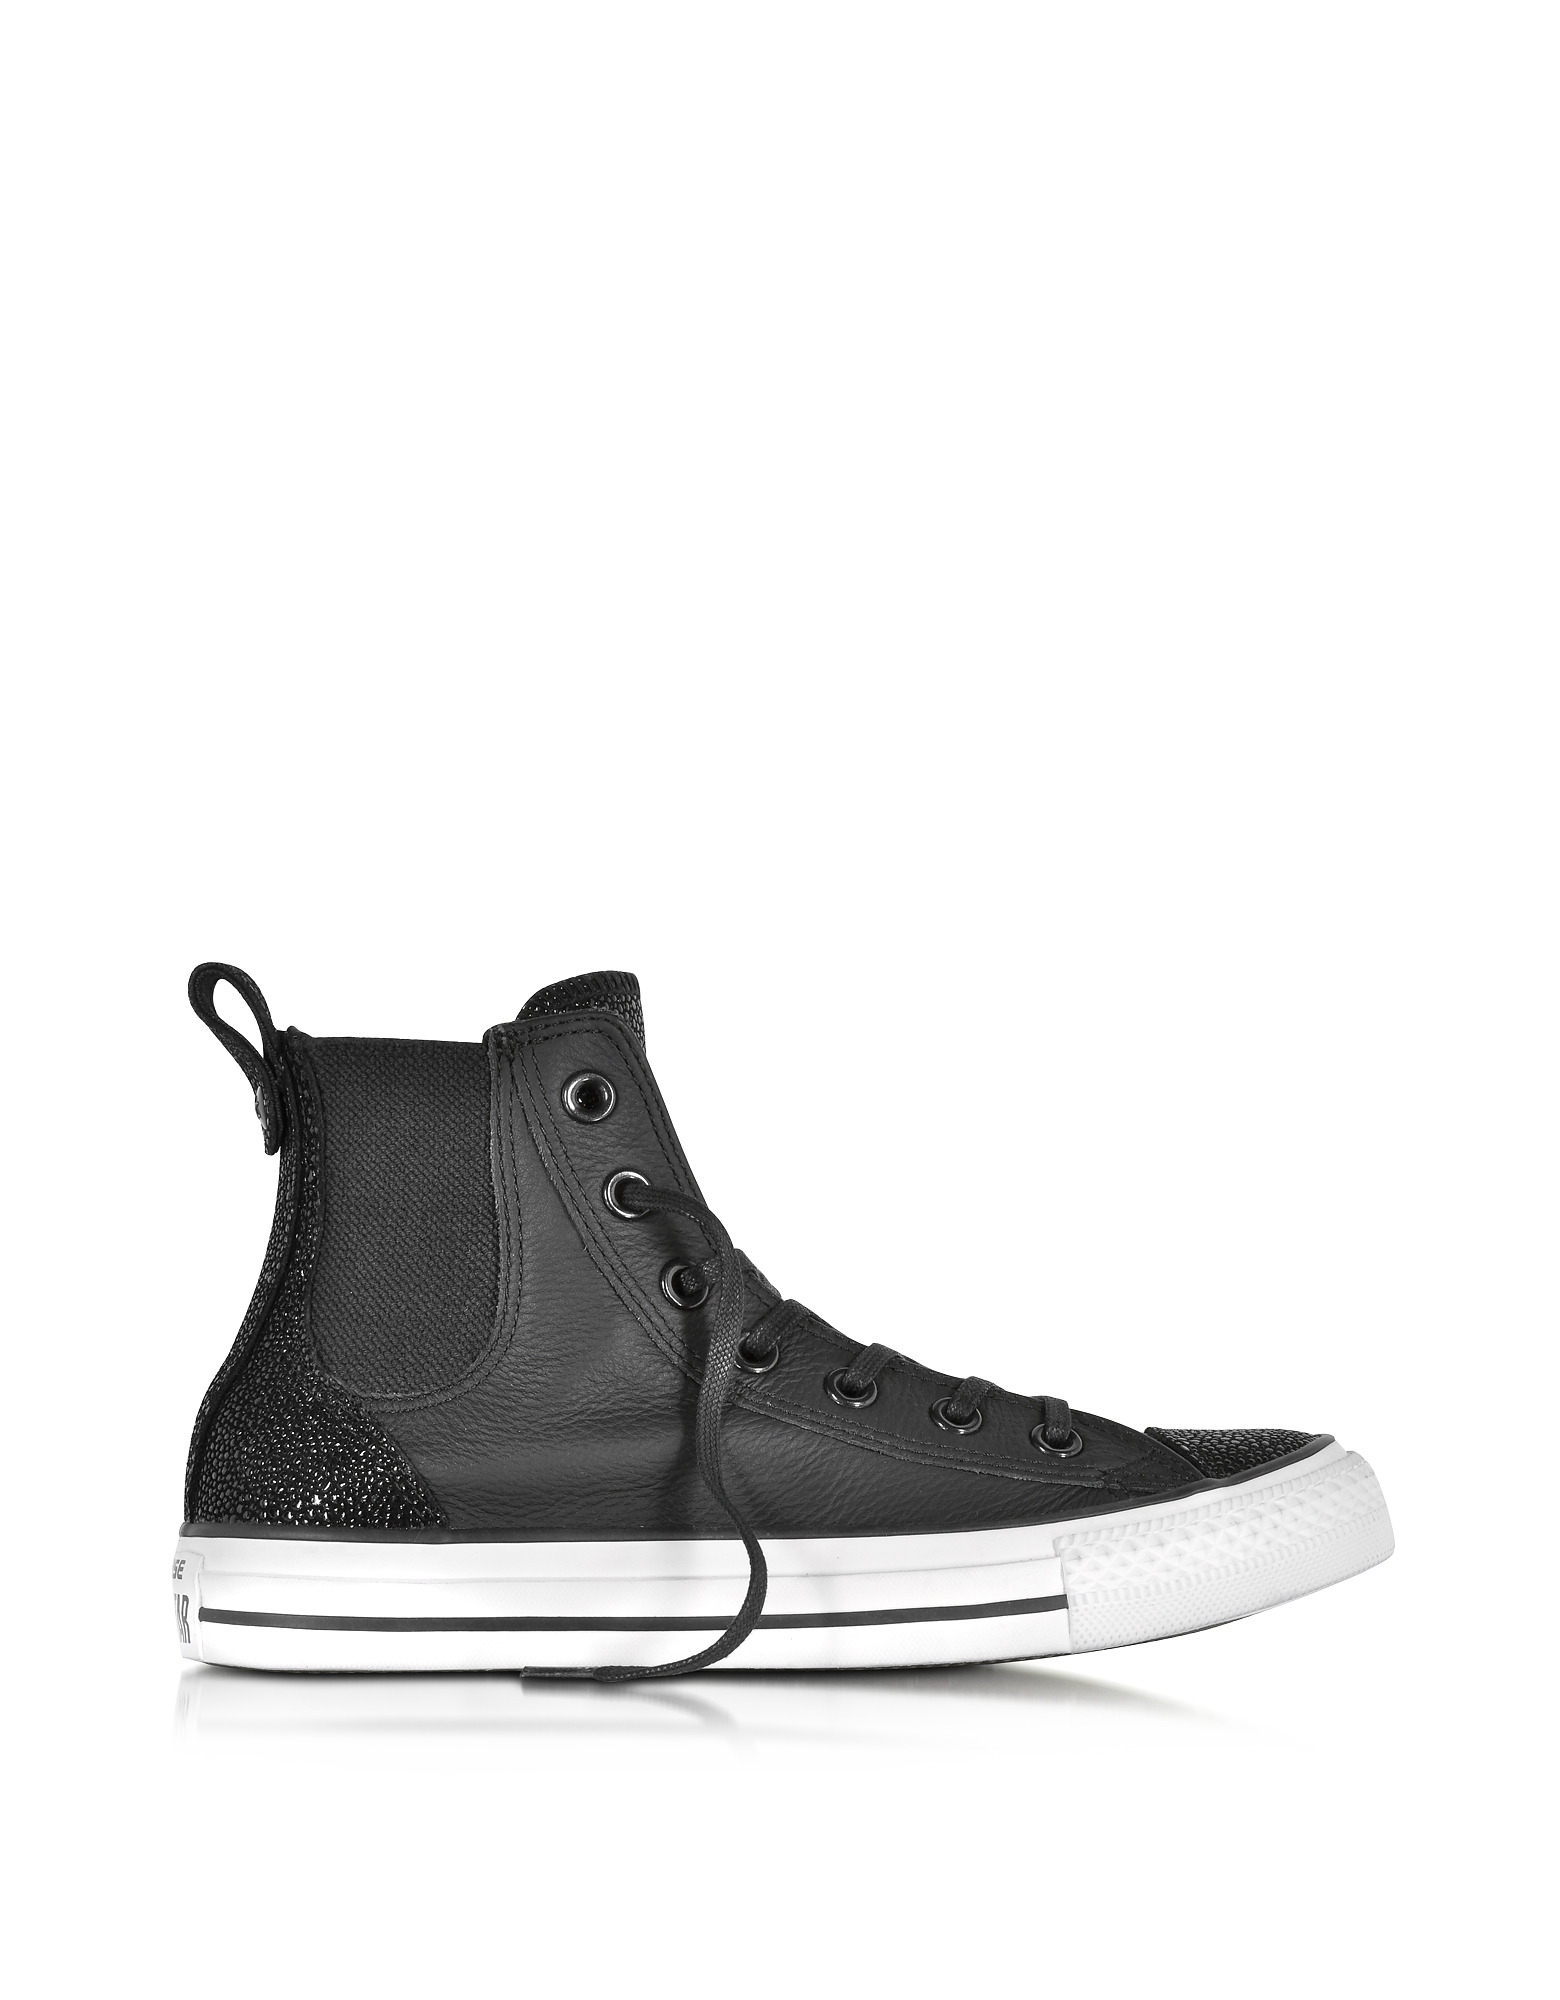 Converse Limited Edition All Star - ������� ������ ������� ������� ���� Chelsee